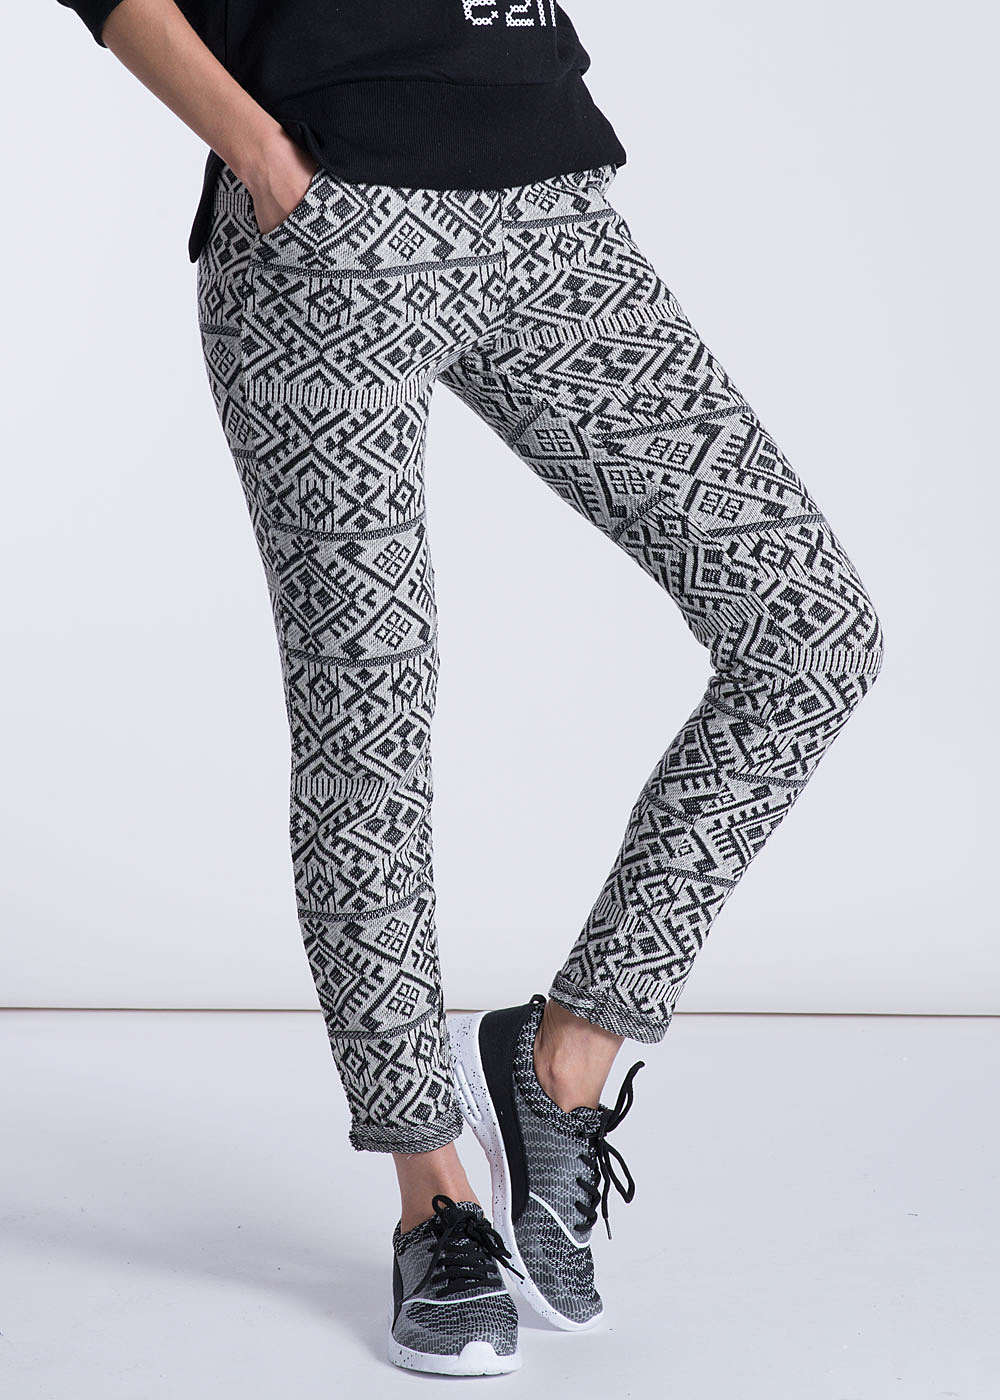 eight2nine damen sweatpant 2 taschen kordelzug graphical muster weiss schwarz ebay. Black Bedroom Furniture Sets. Home Design Ideas